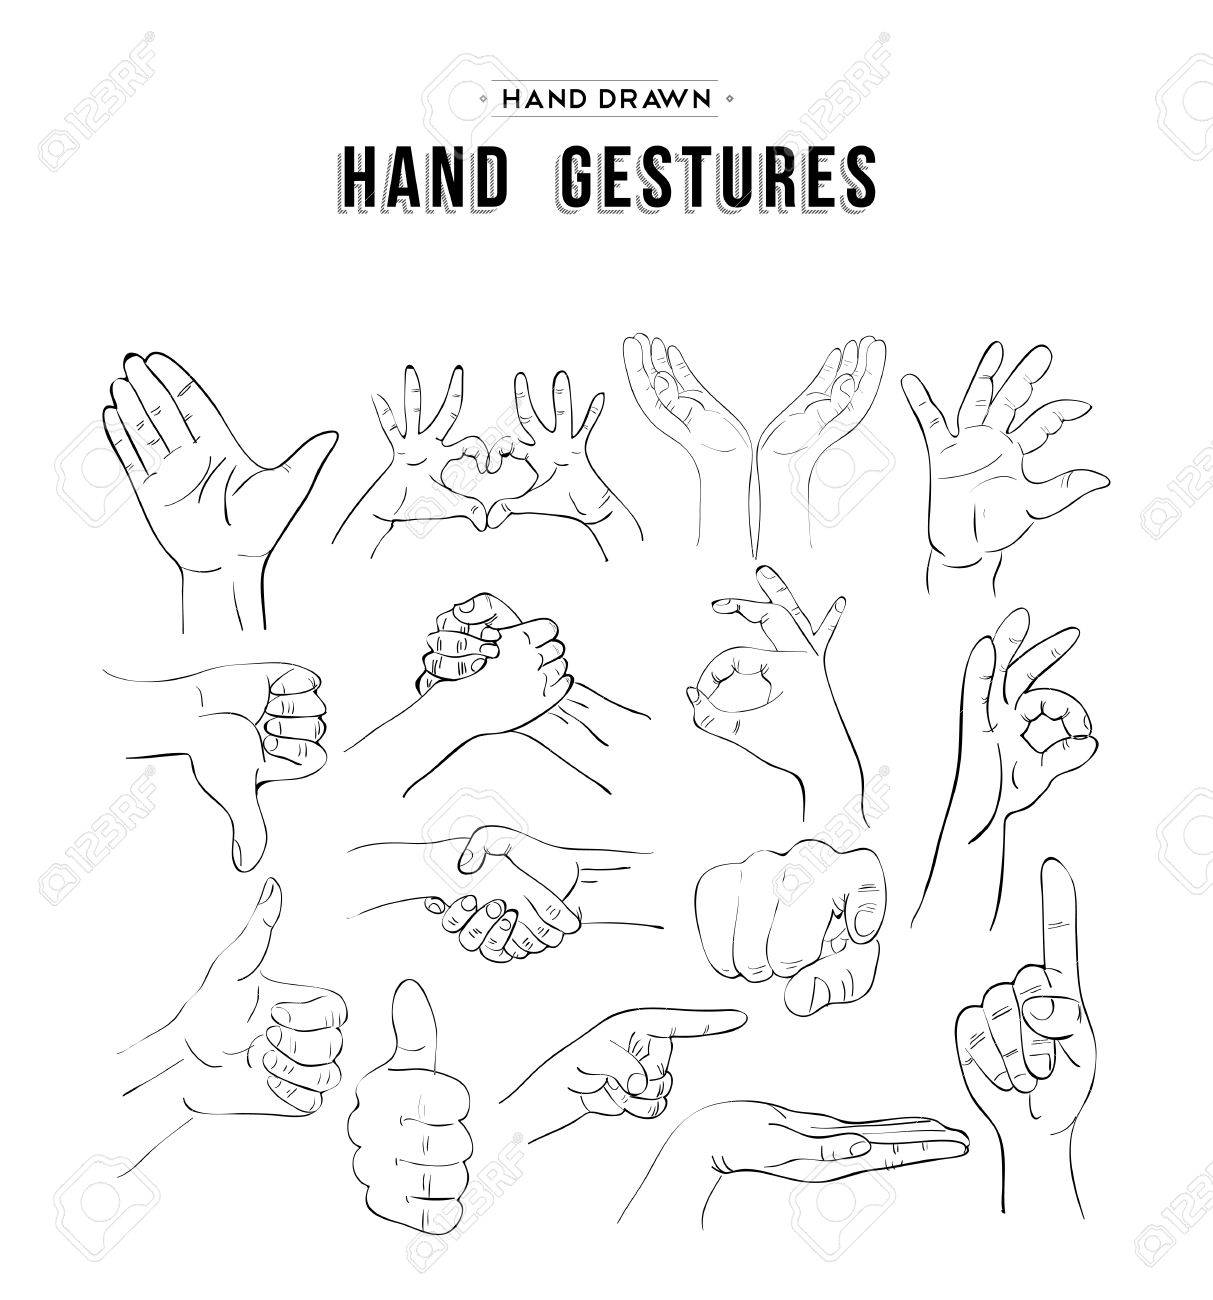 Handmade sketches set of hand gesture signs. Universal social communication icons. vector. - 51425356